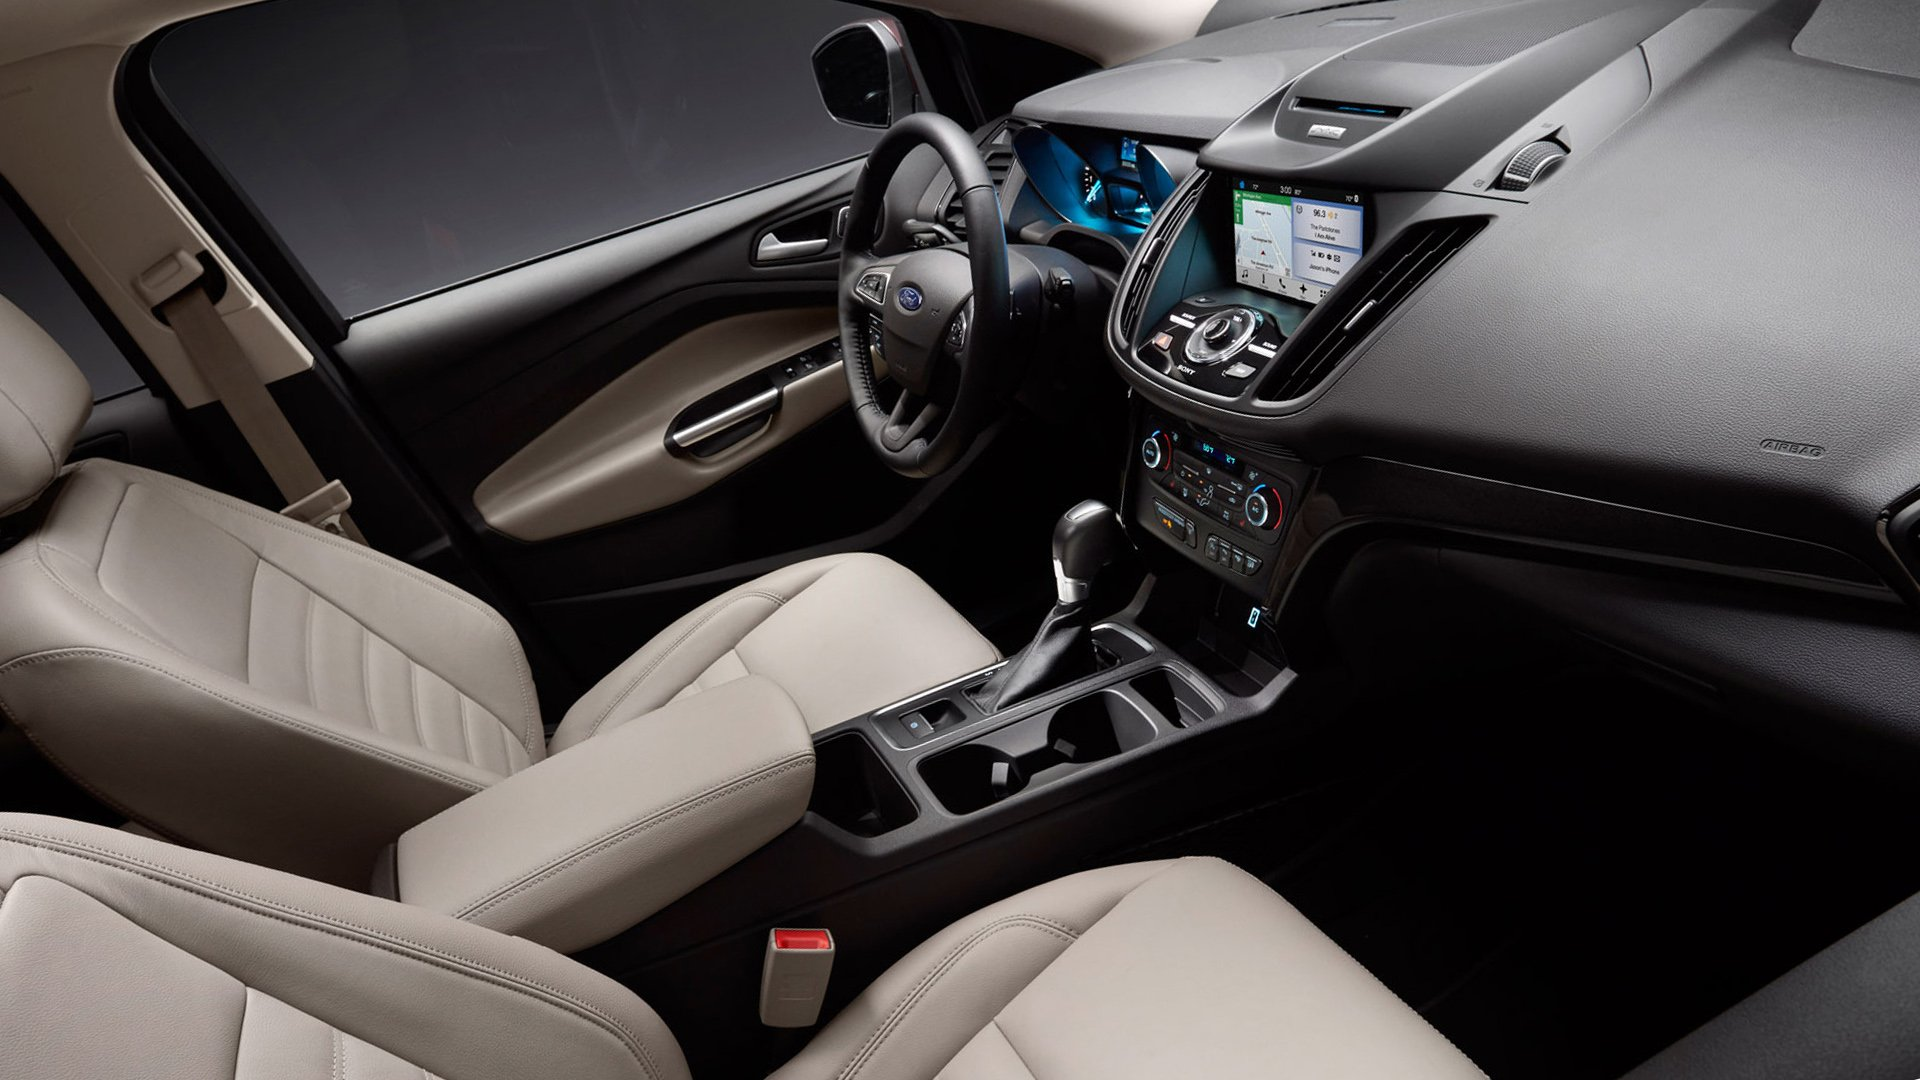 New 2019 Ford Kuga Interior Design